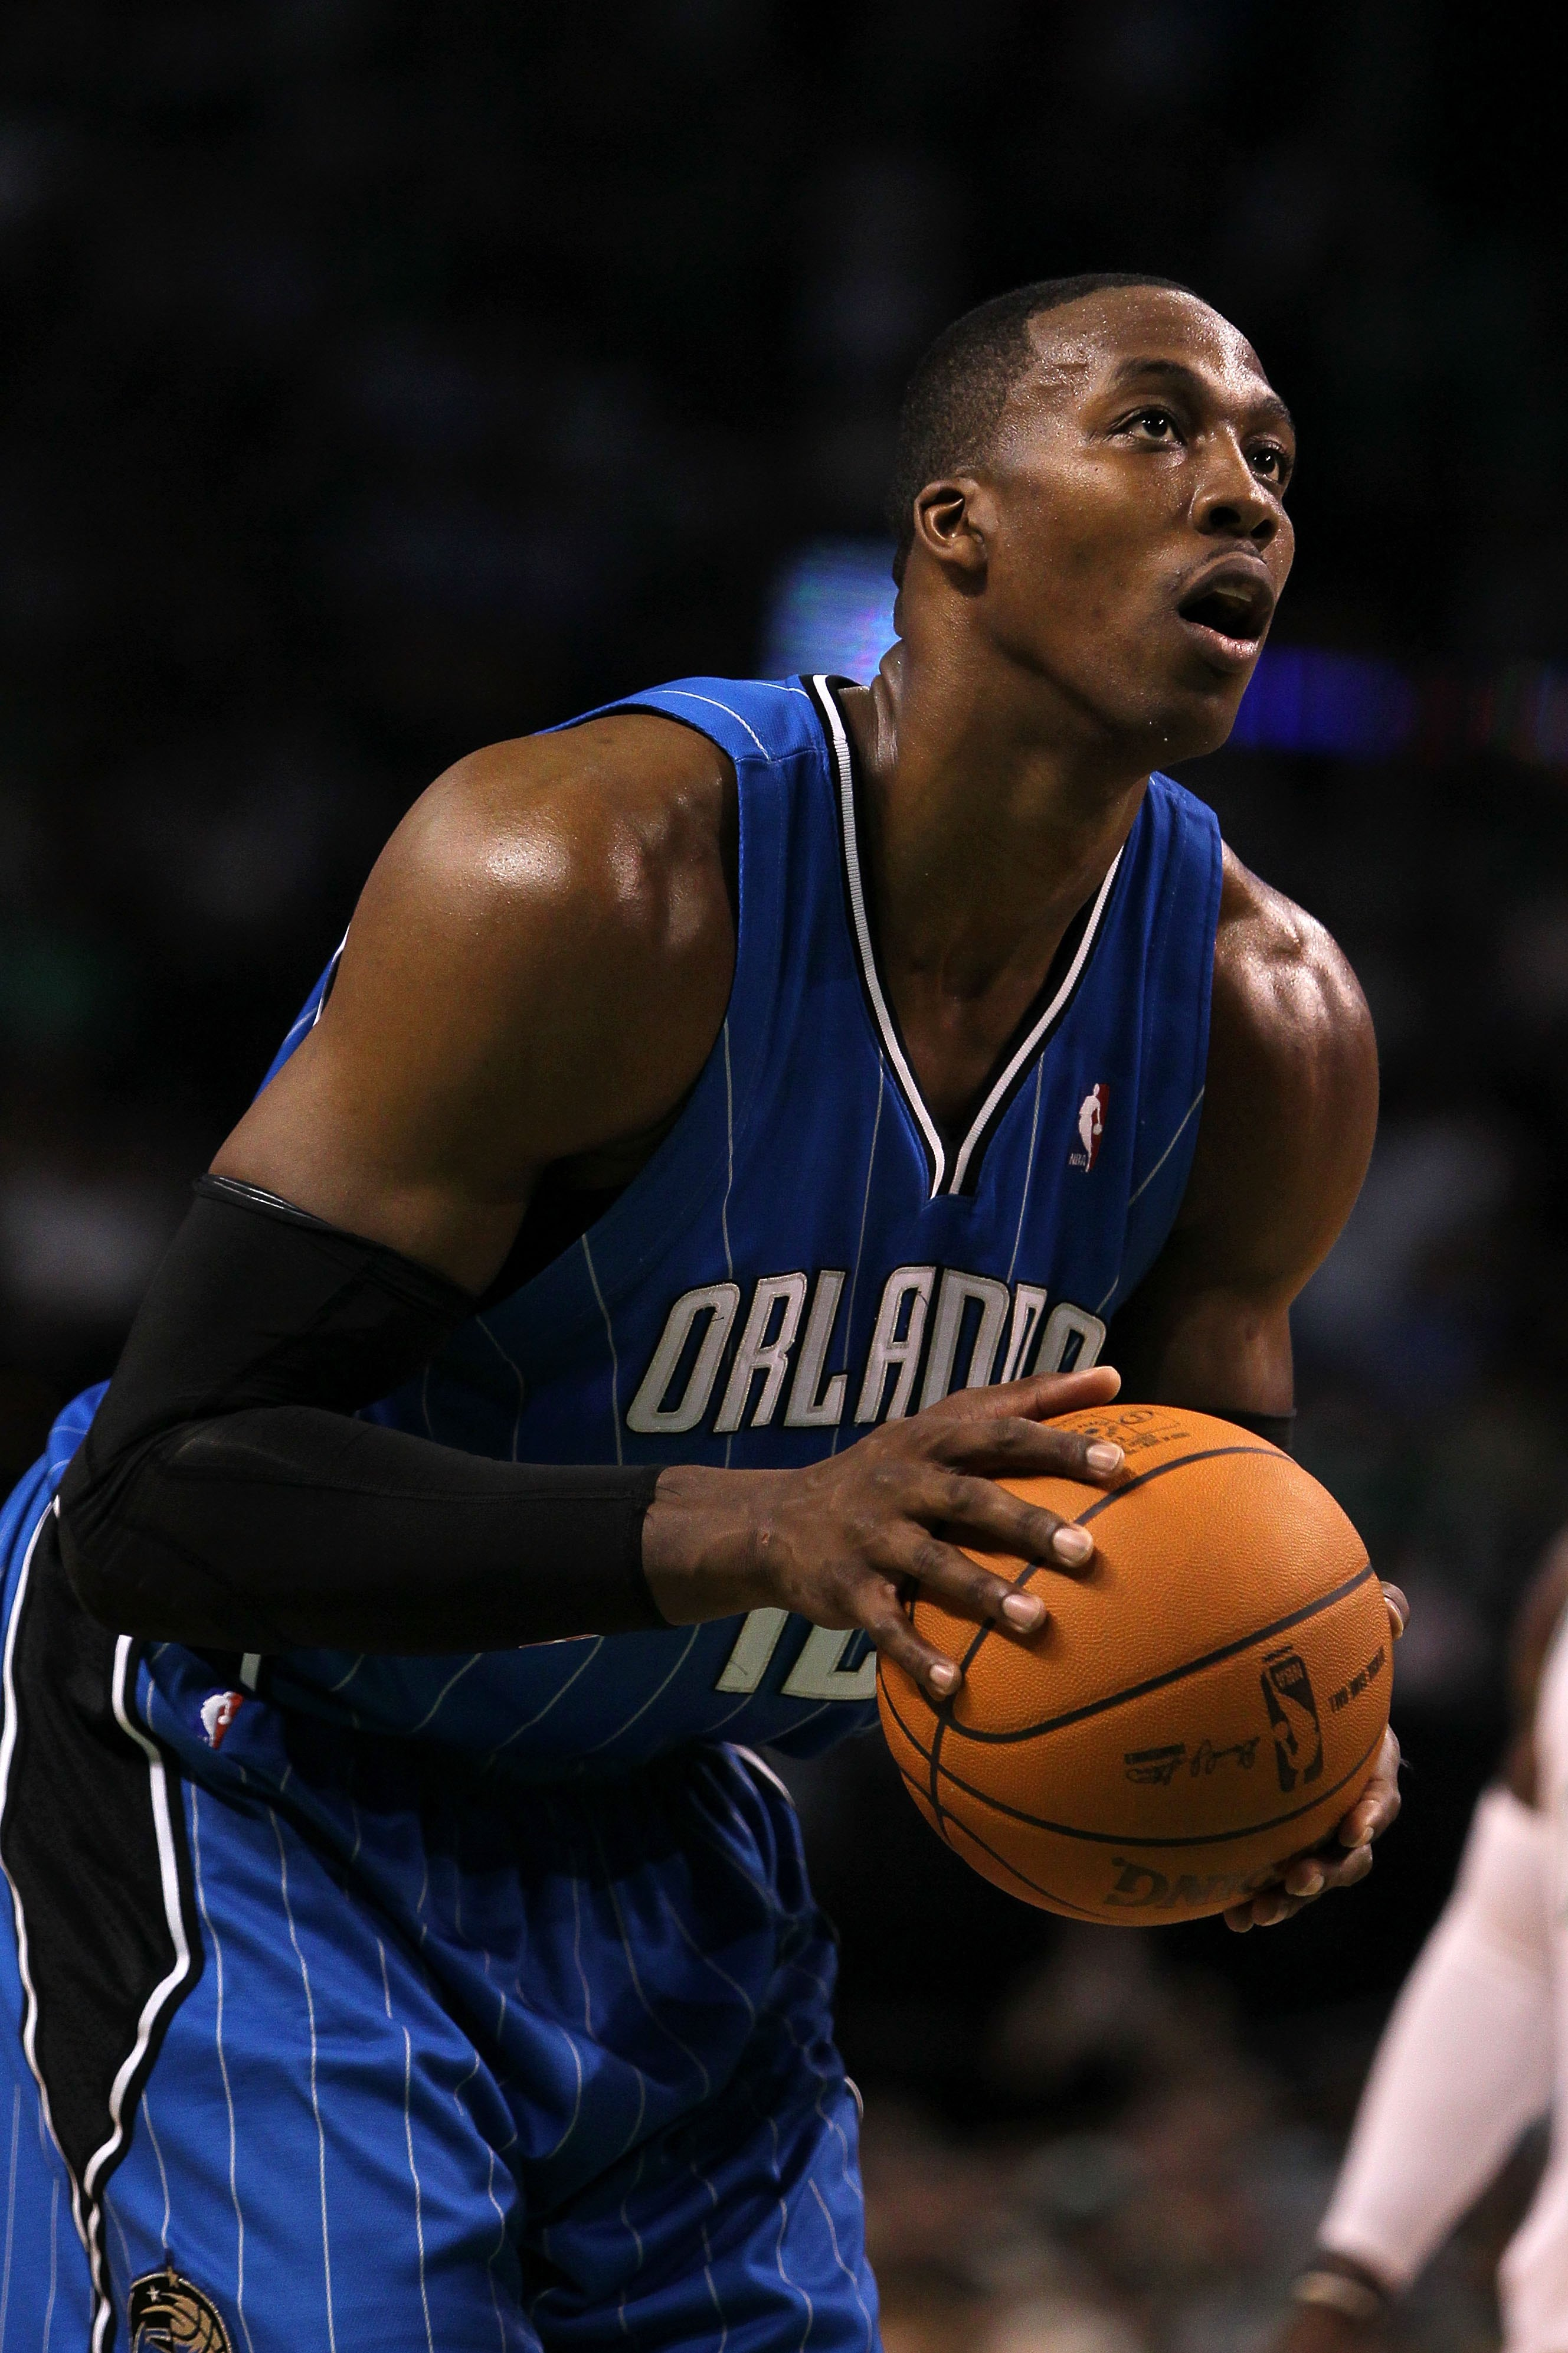 BOSTON - MAY 28:  Dwight Howard of the Orlando Magic gets set to attempt a free throw against the Boston Celtics in Game Six of the Eastern Conference Finals during the 2010 NBA Playoffs at TD Garden on May 28, 2010 in Boston, Massachusetts.  NOTE TO USER